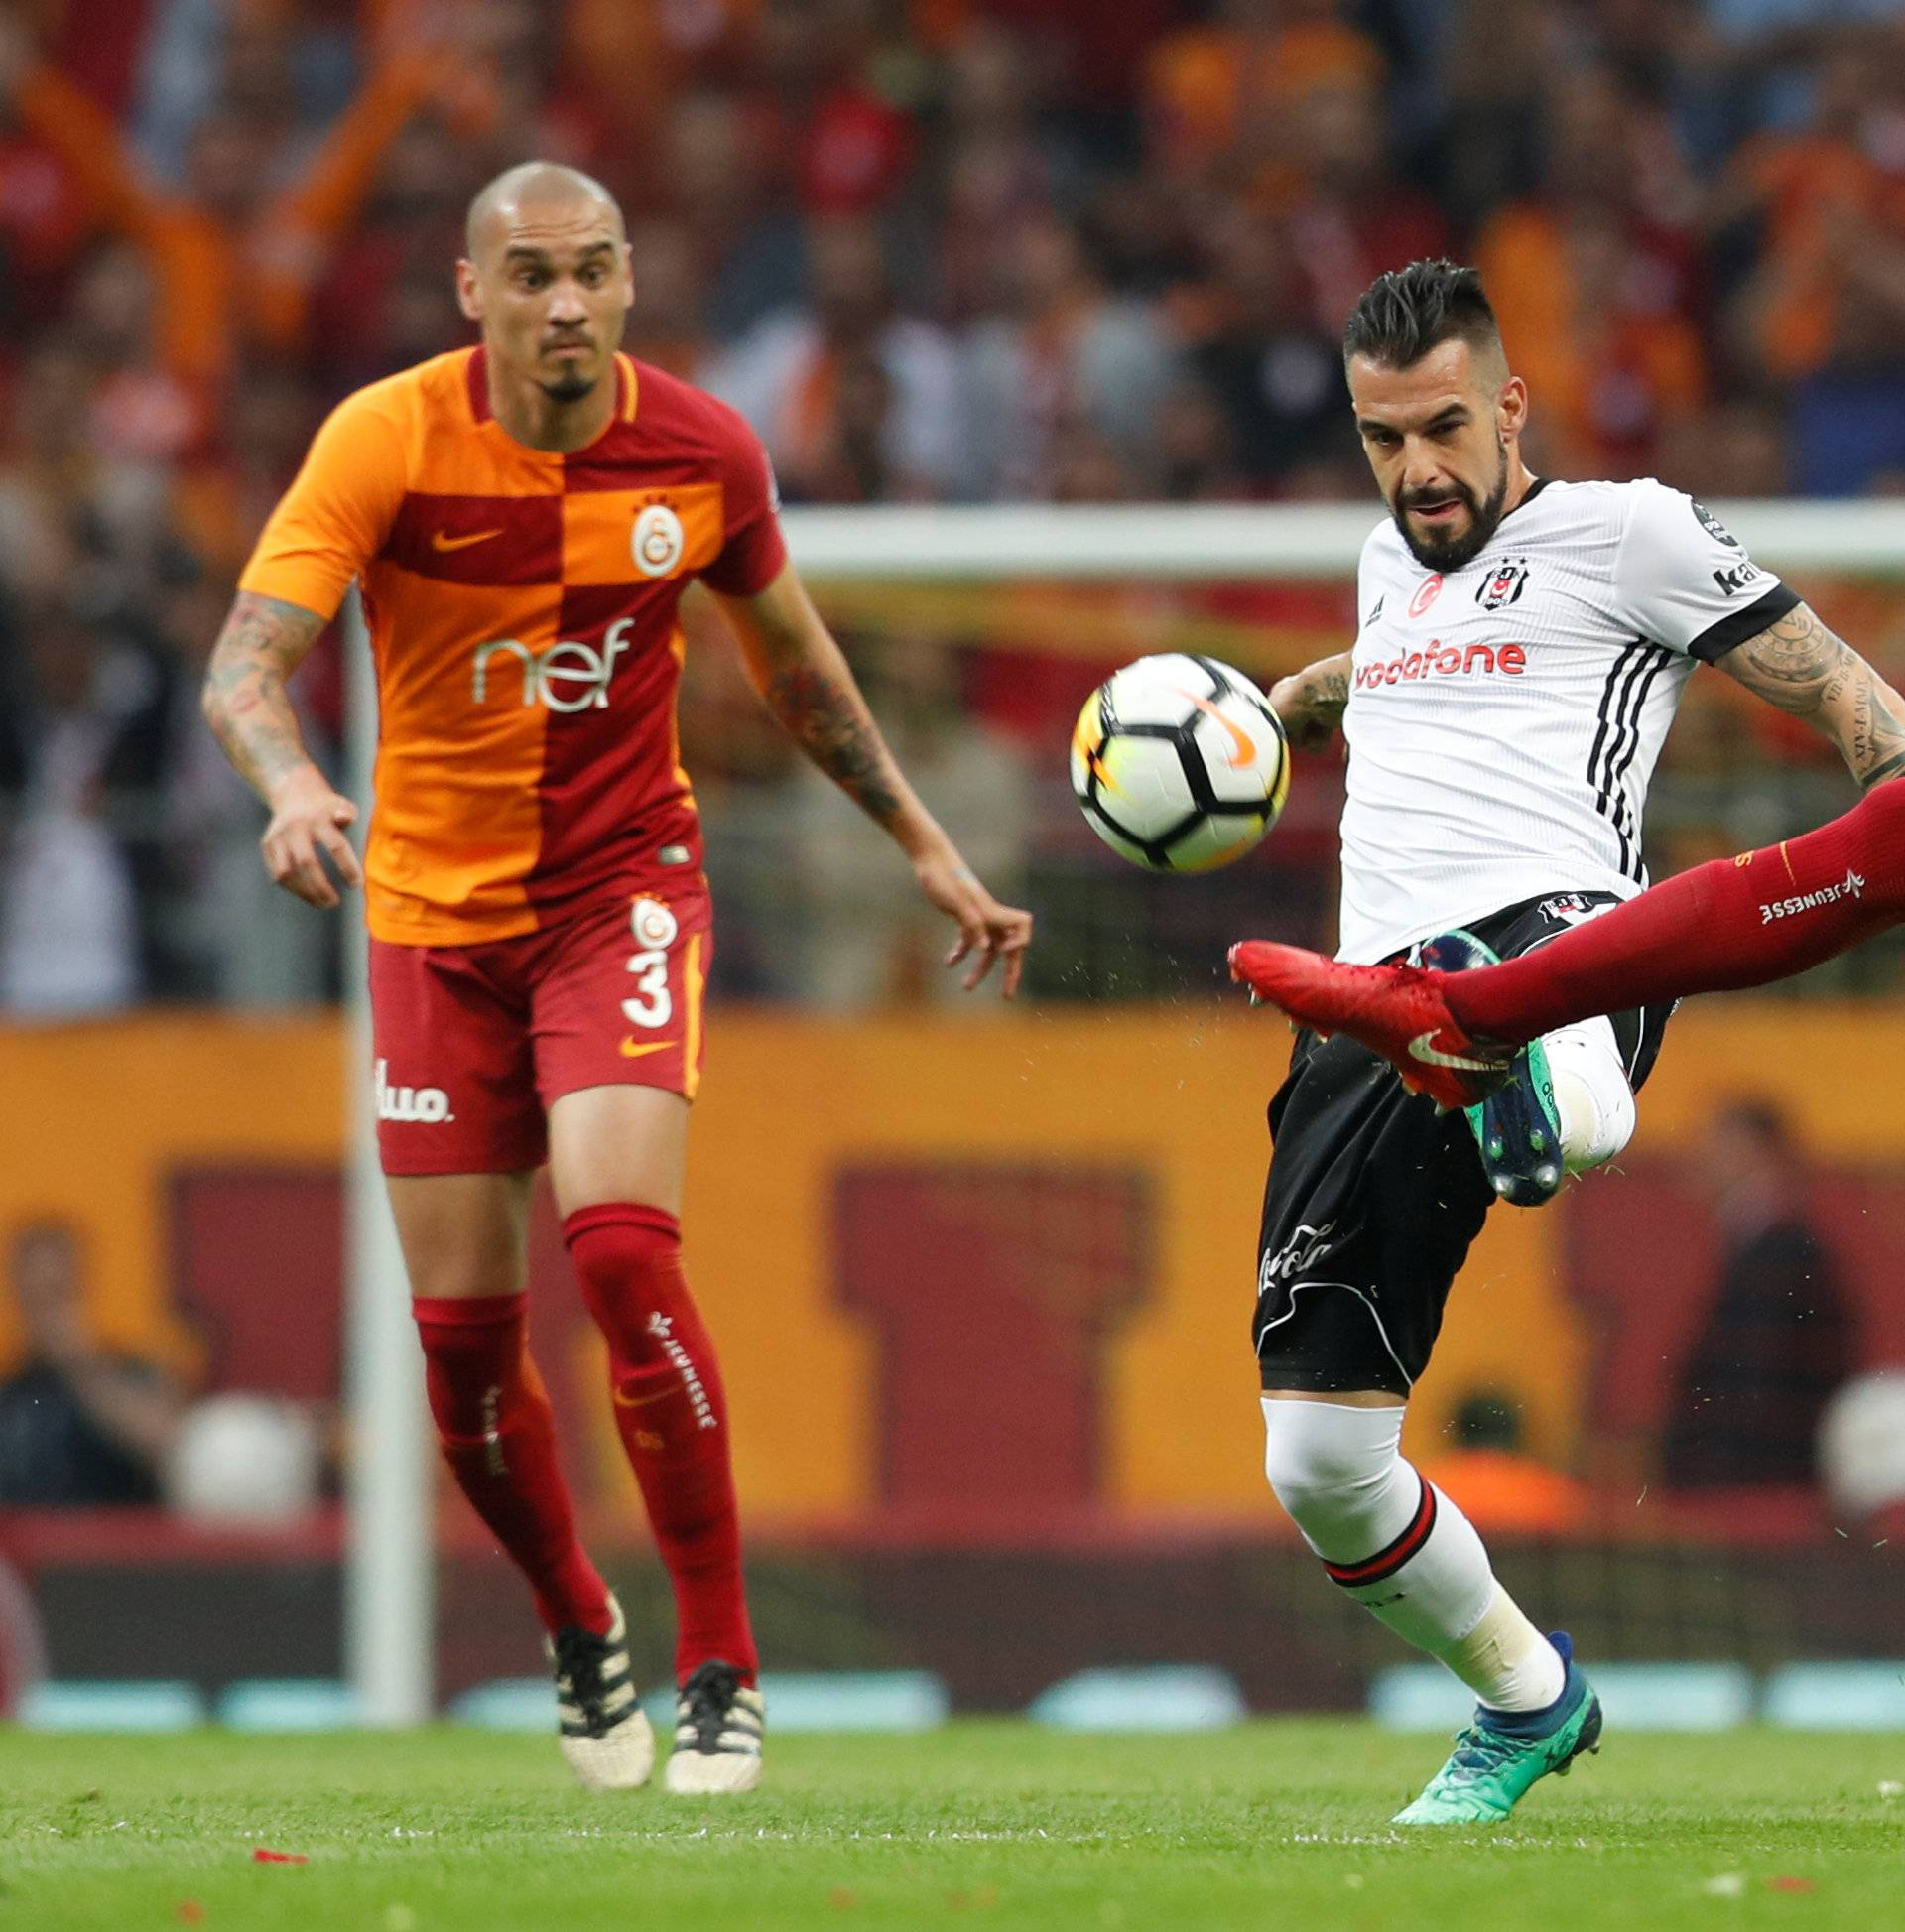 Turkish Super League - Galatasaray v Besiktas